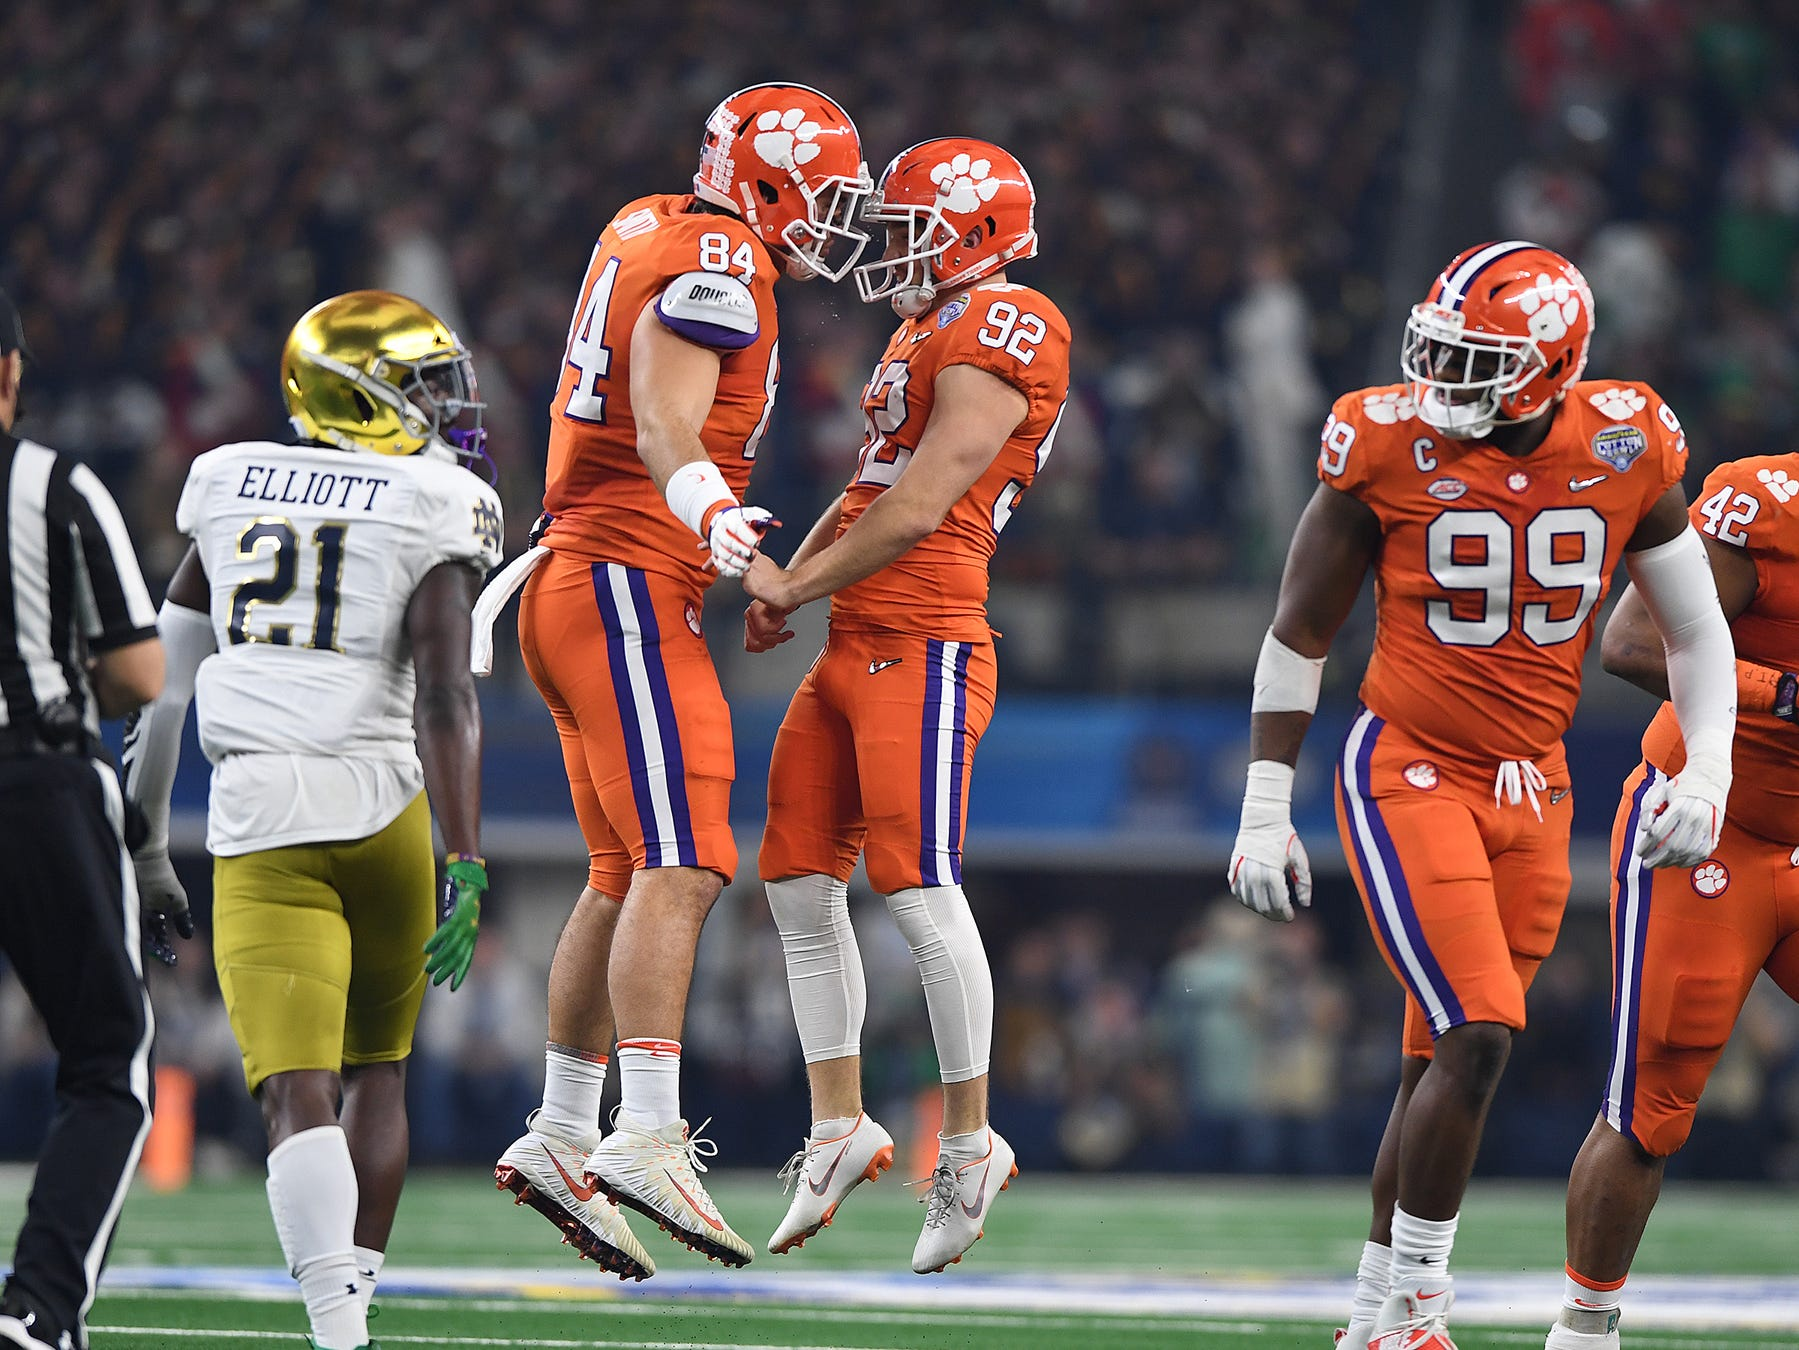 Clemson place kicker Greg Huegel (92) celebrates with tight end Cannon Smith (84) after kicking a field goal against Notre Dame during the 1st quarter of the Goodyear Cotton Bowl at AT&T stadium in Arlington, TX Saturday, December 29, 2018.